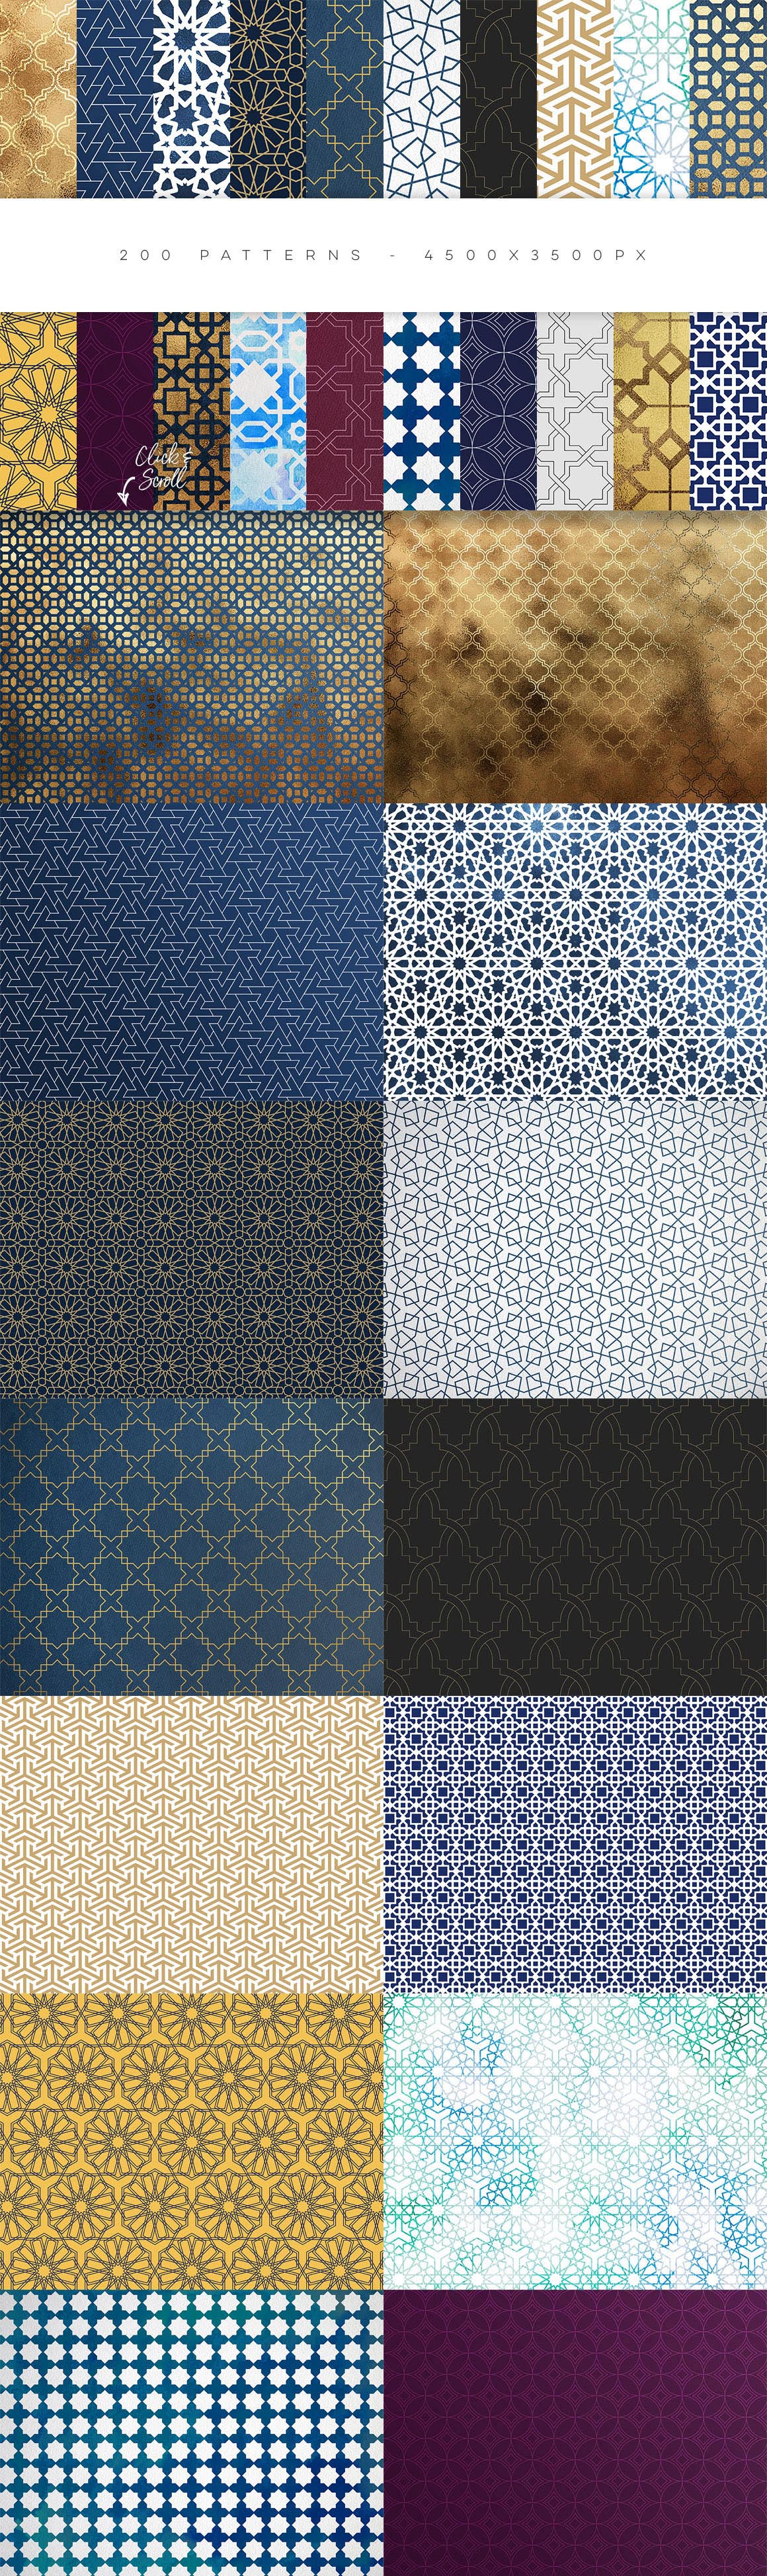 The Expansive Textures And Patterns Collection